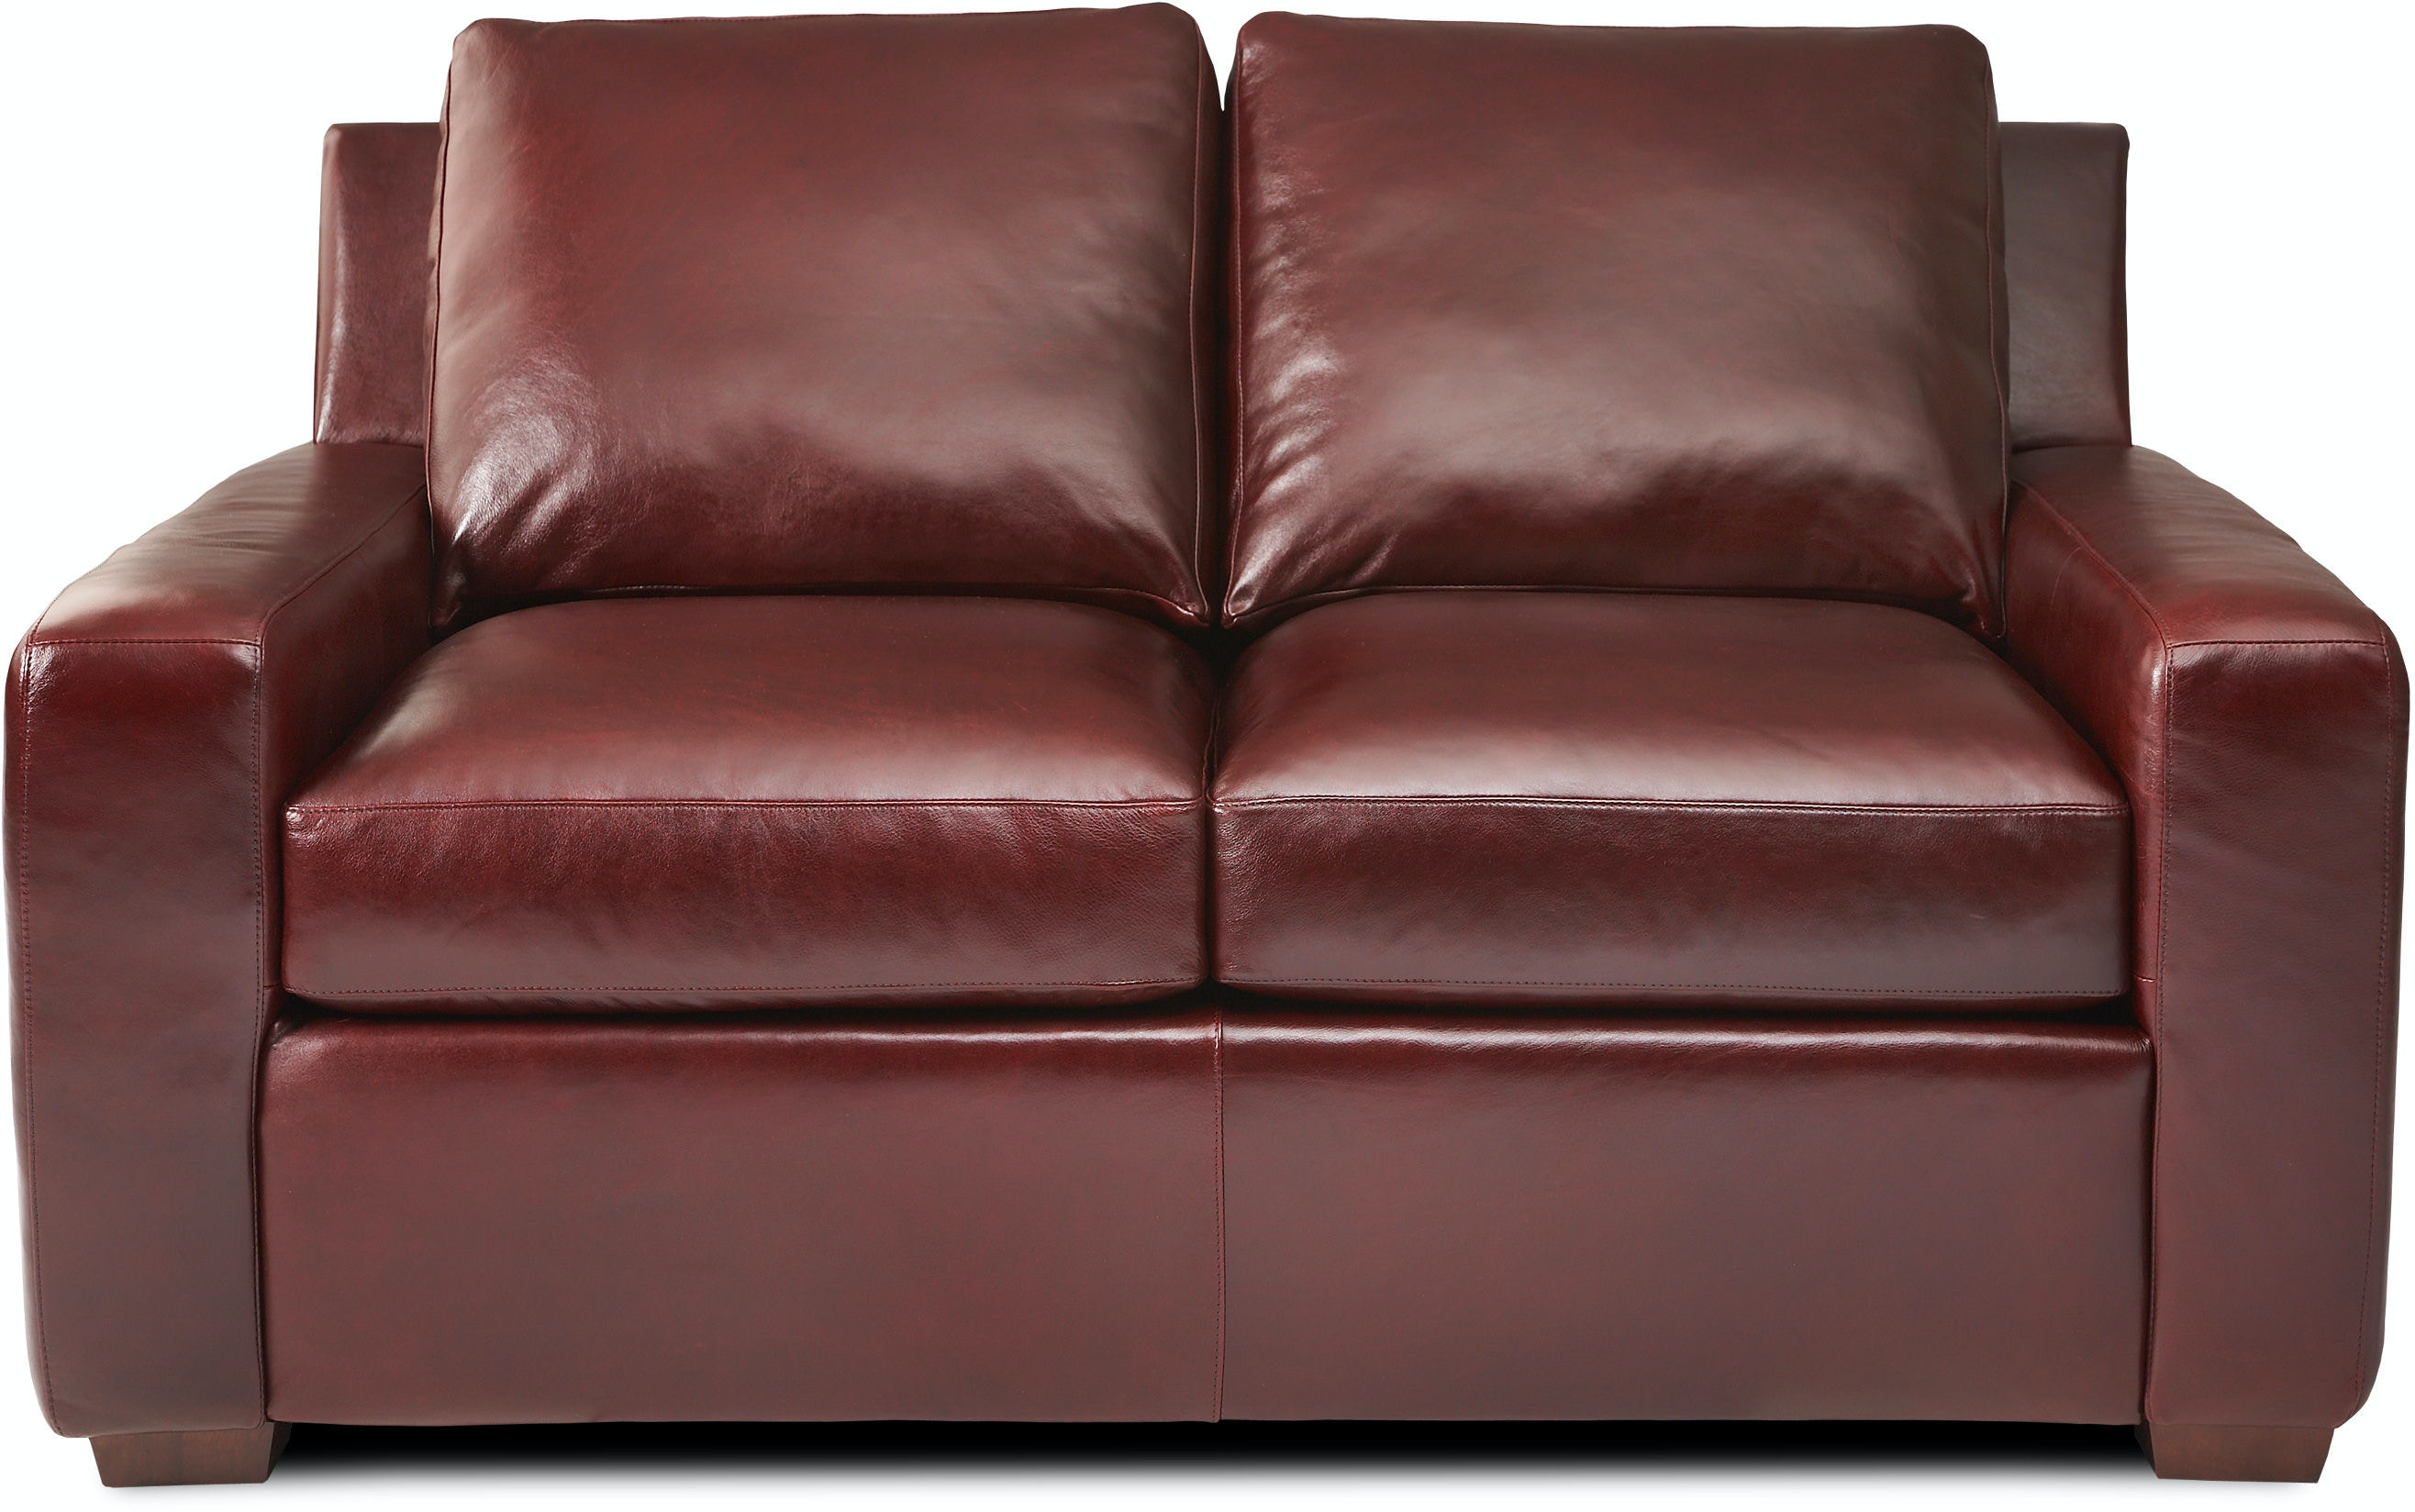 American Leather Living Room Two Cushion Loveseat Lis Lvs St Goods Home Furnishings North